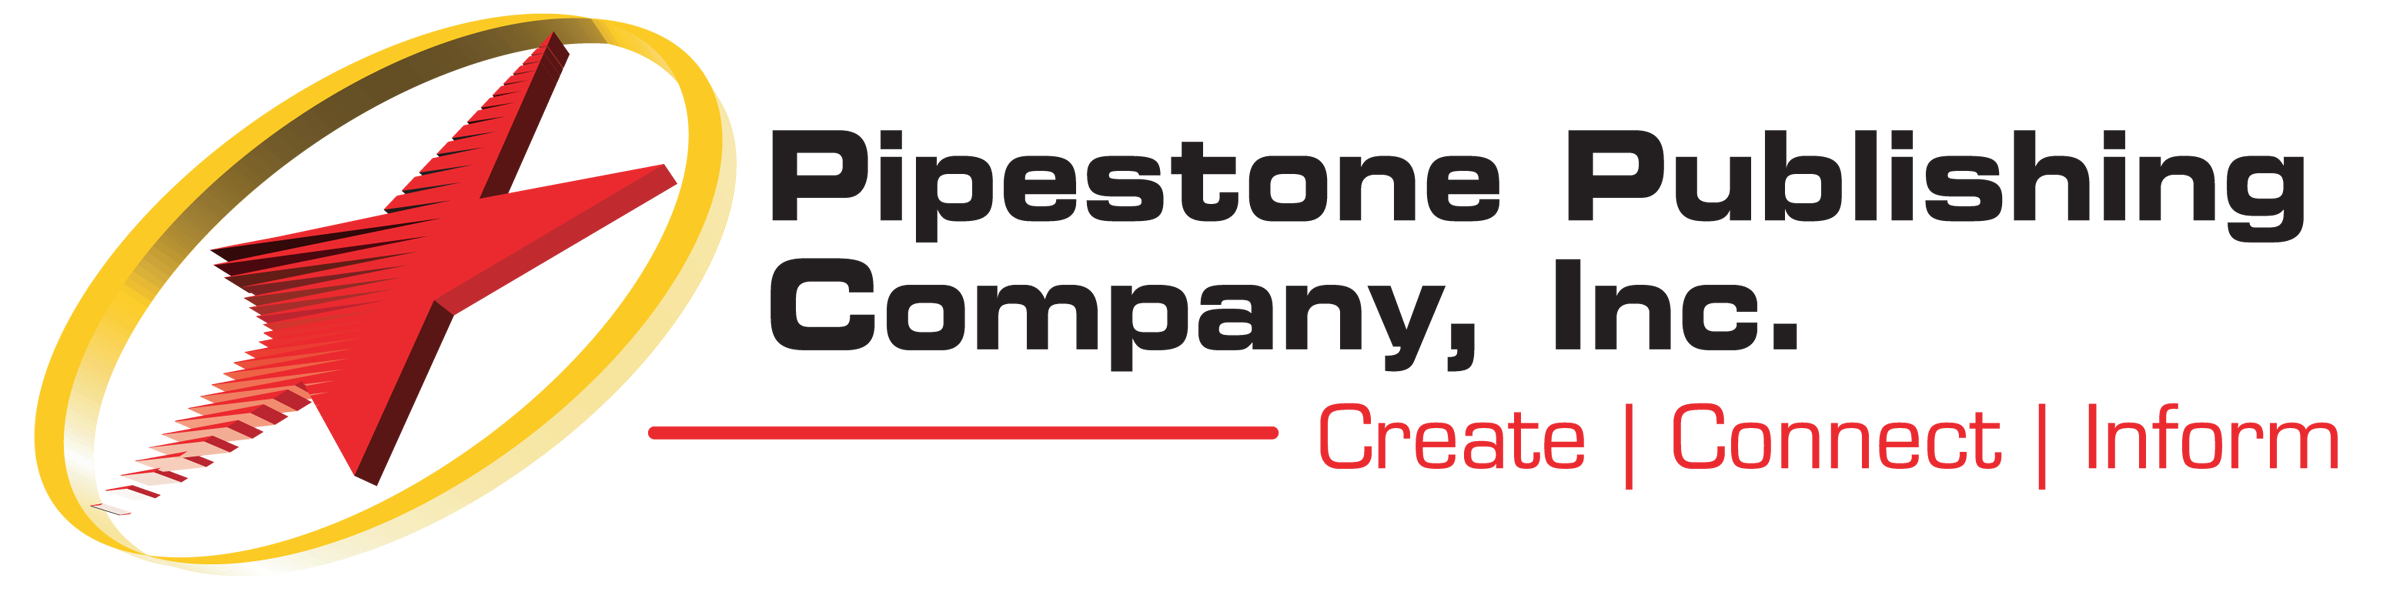 Pipestone Publishing Co, Inc.